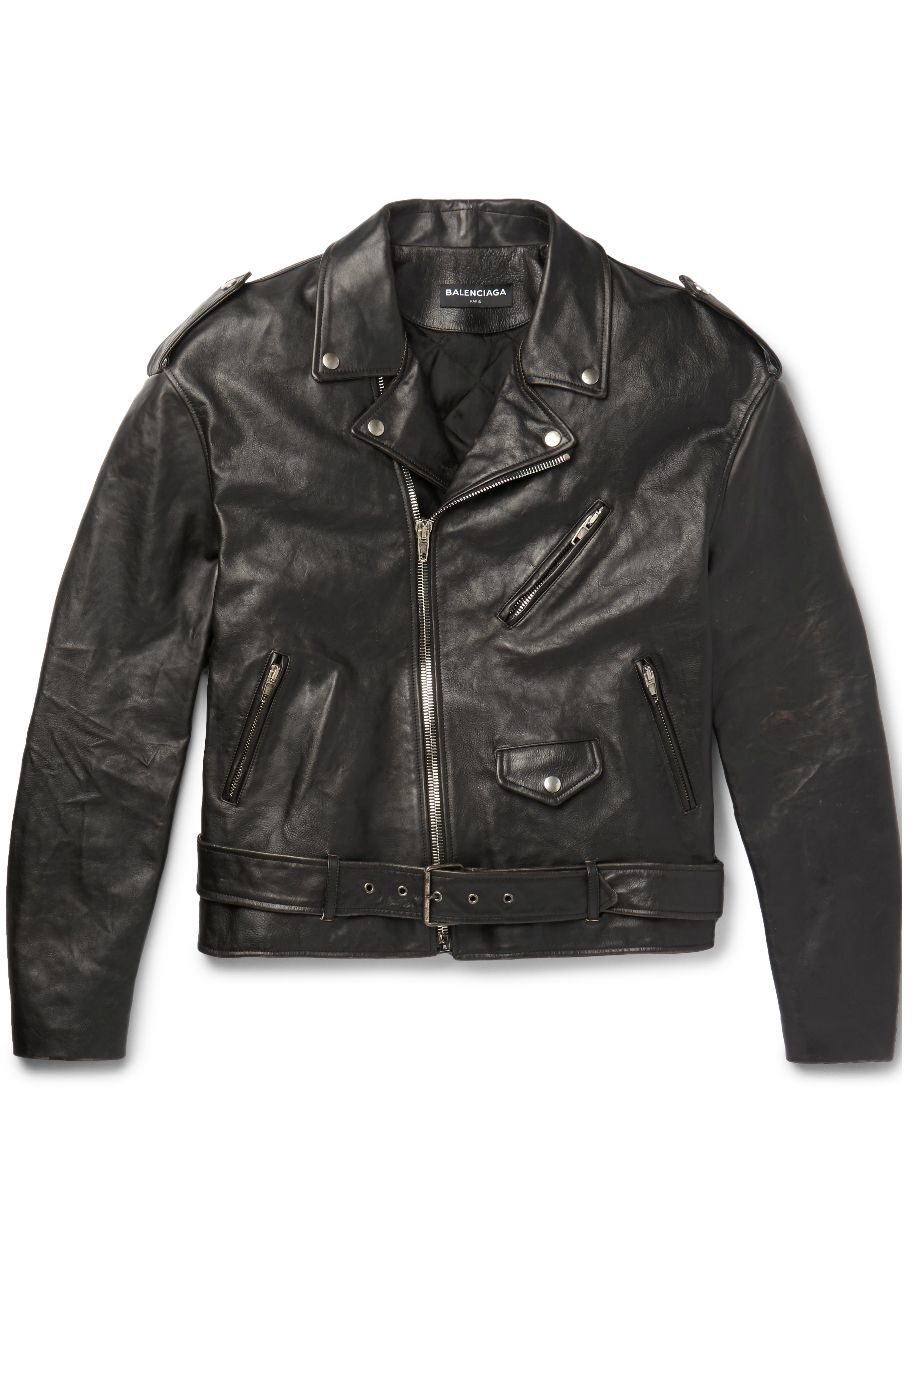 MR PORTER X BALENCIAGA Paint Logo Leather Biker Jacket